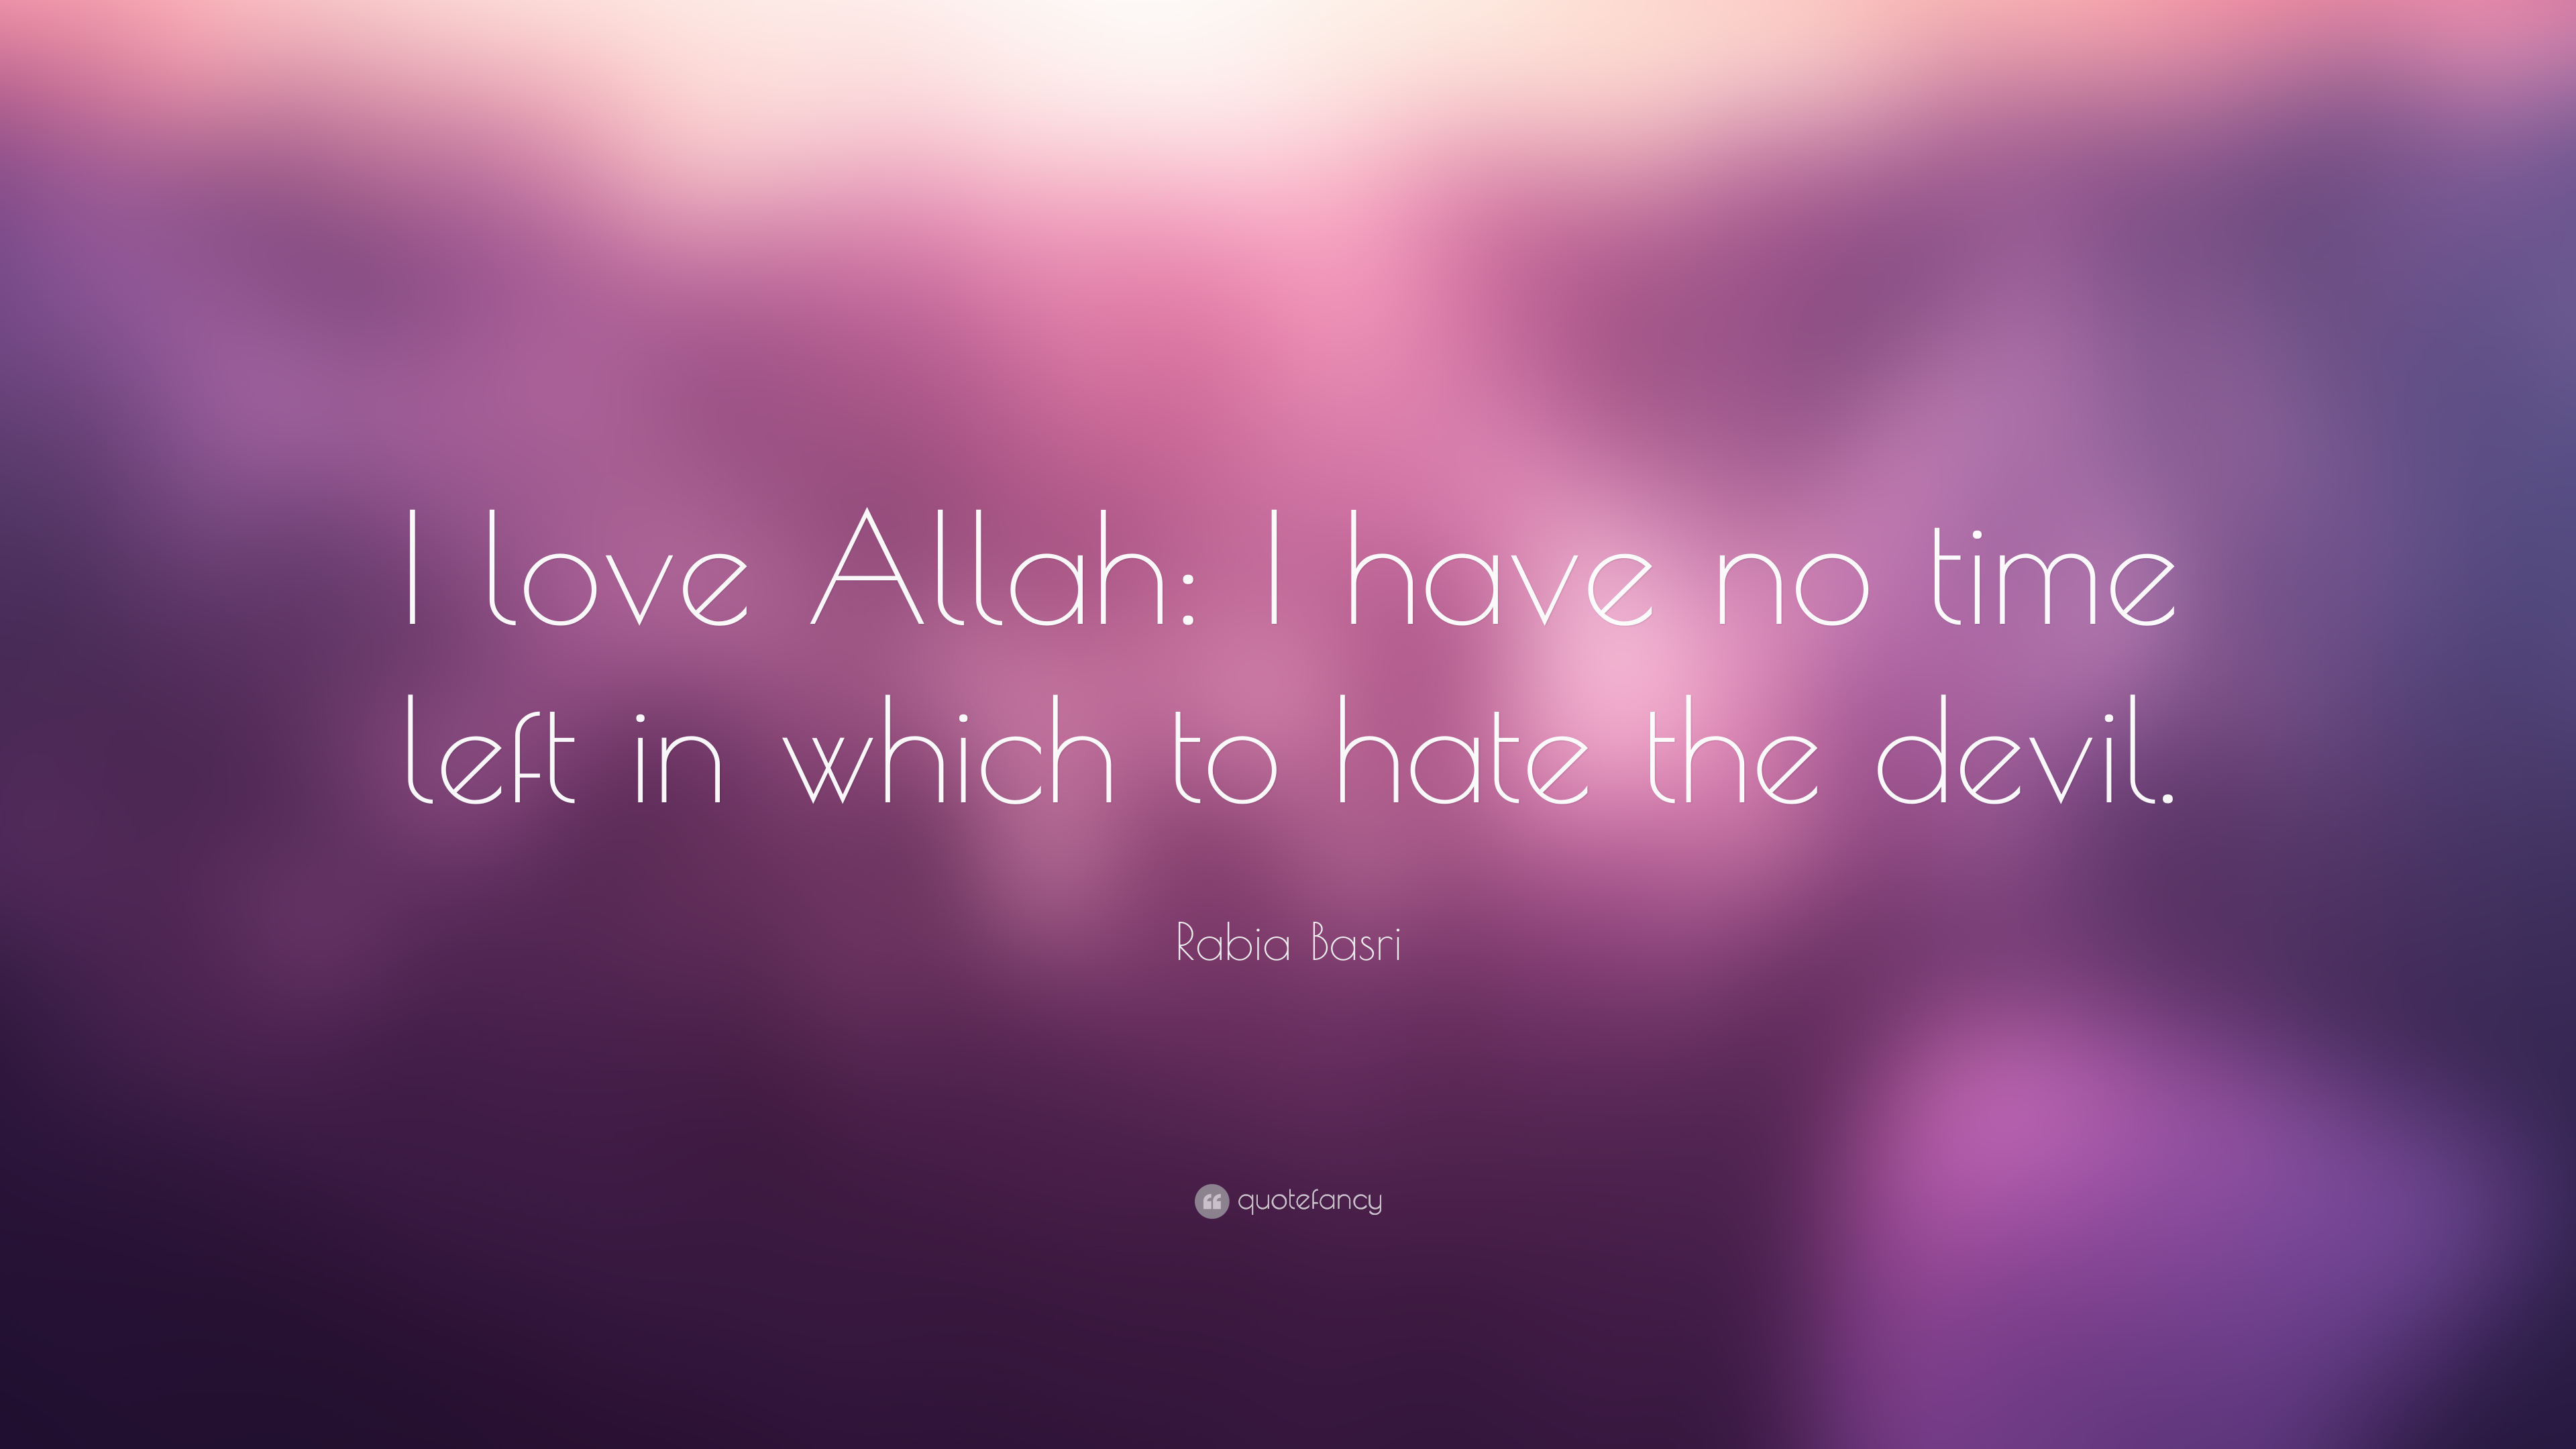 We Love Allah Wallpaper : Rabia Basri Quote: ?I love Allah: I have no time left in which to hate the devil.? (9 wallpapers ...